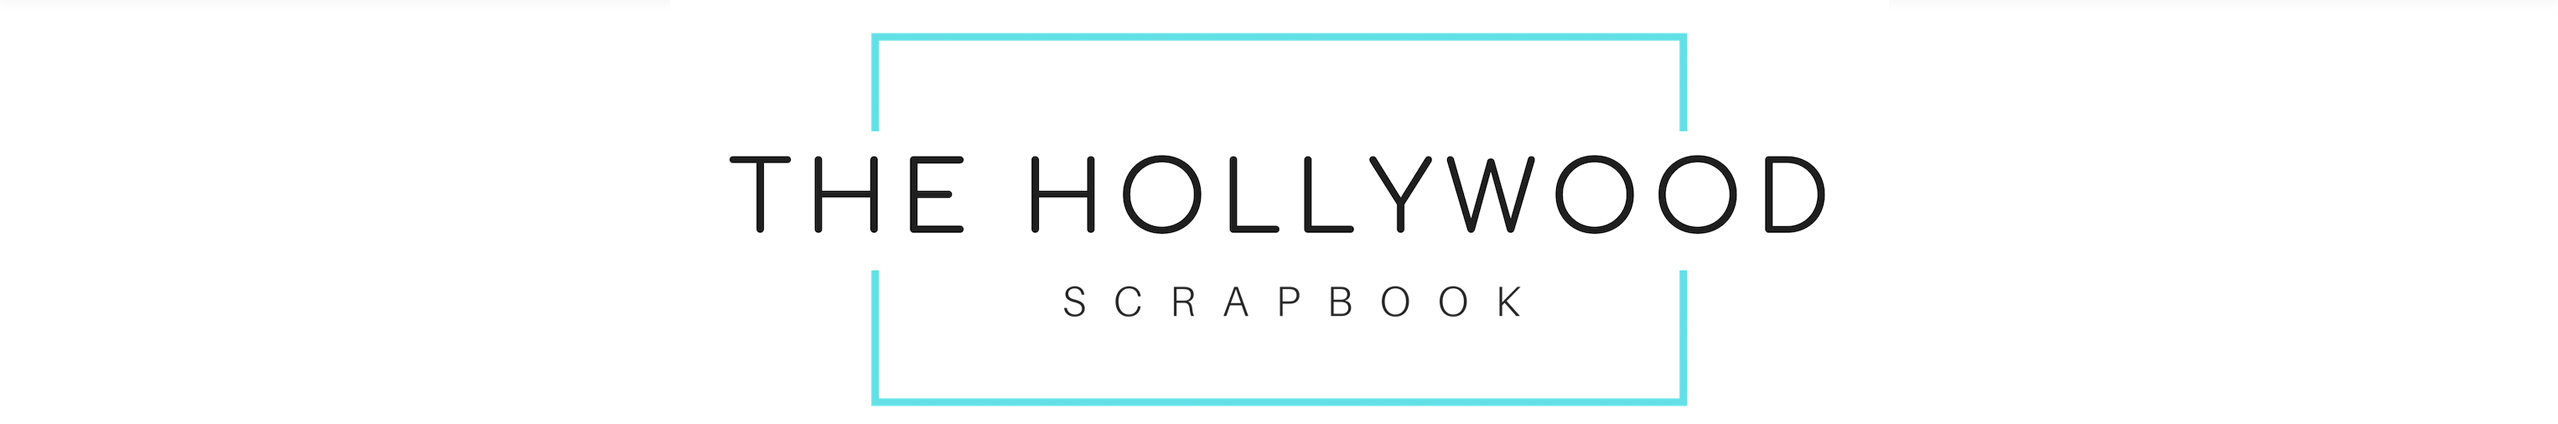 The Hollywood Scrapbook